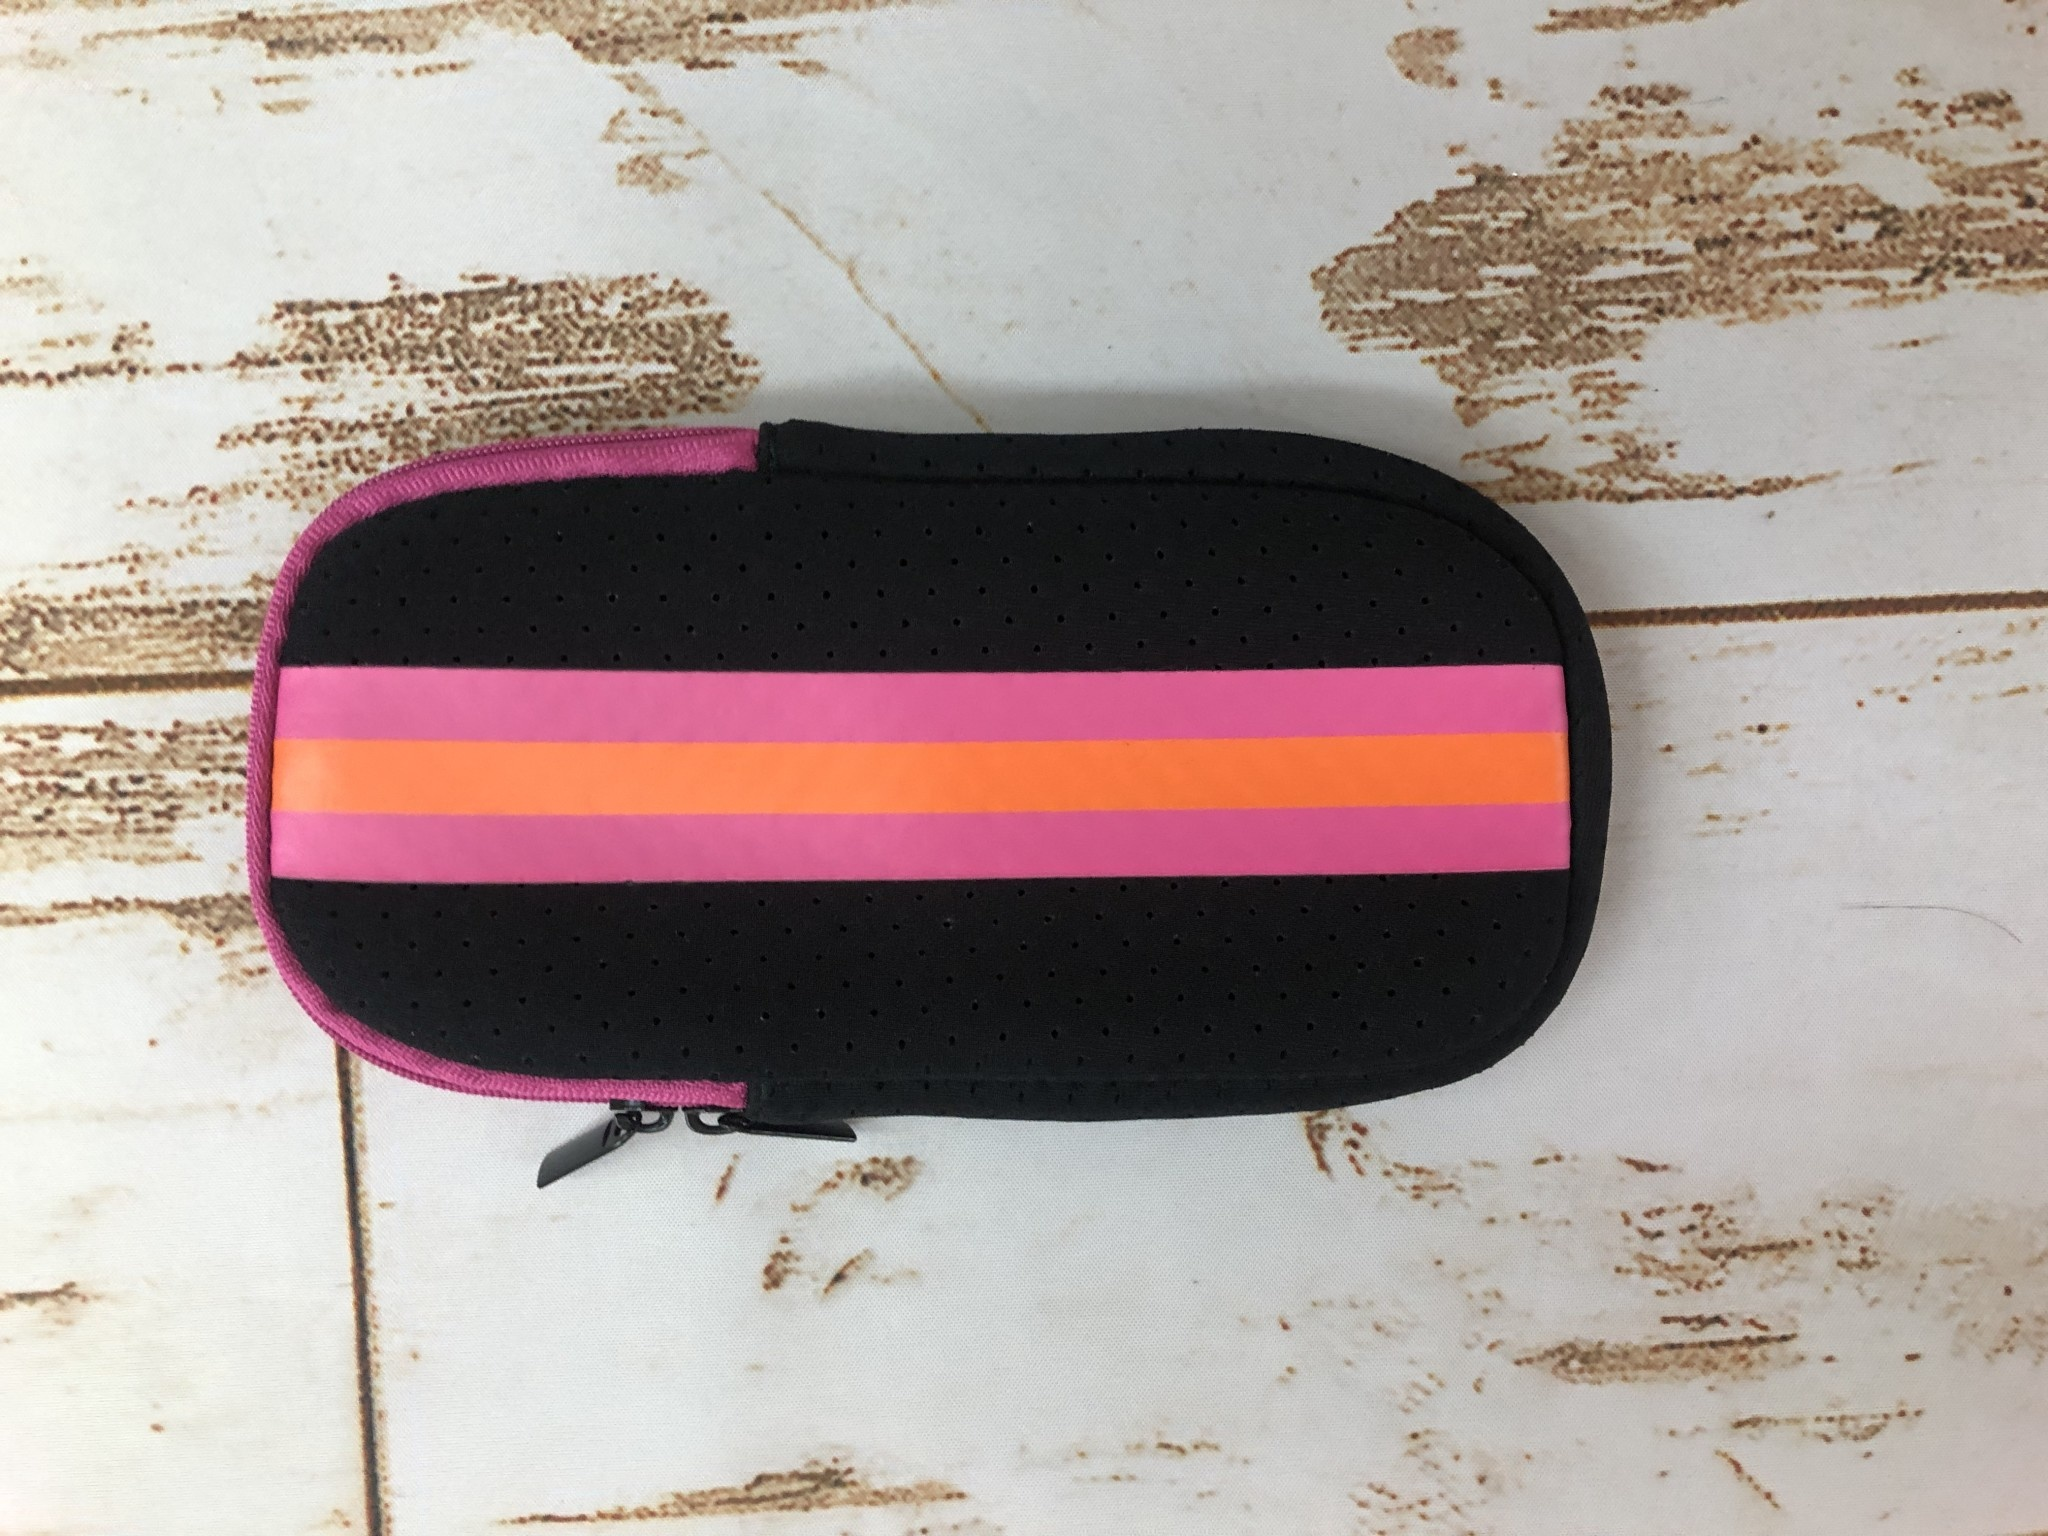 Haute Shore Ltd Ev Glasses Case -Rave Black Pink Orange Stripe